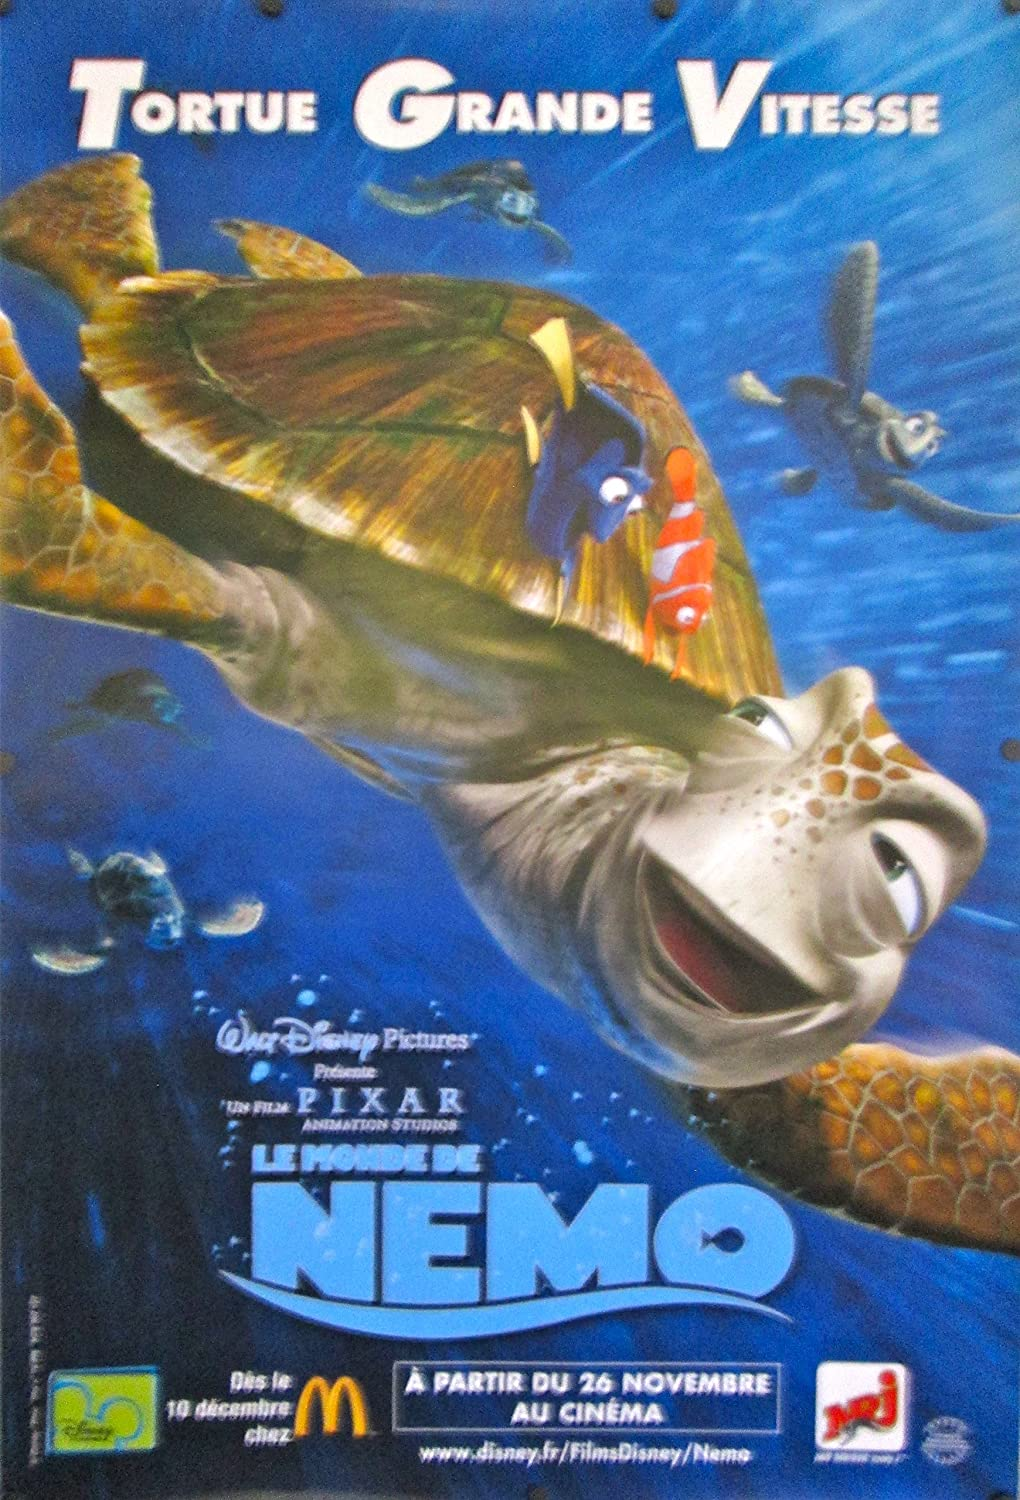 Poster original finding nemo advance french movie poster crush at poster original finding nemo advance french movie poster crush at amazons entertainment collectibles store altavistaventures Image collections